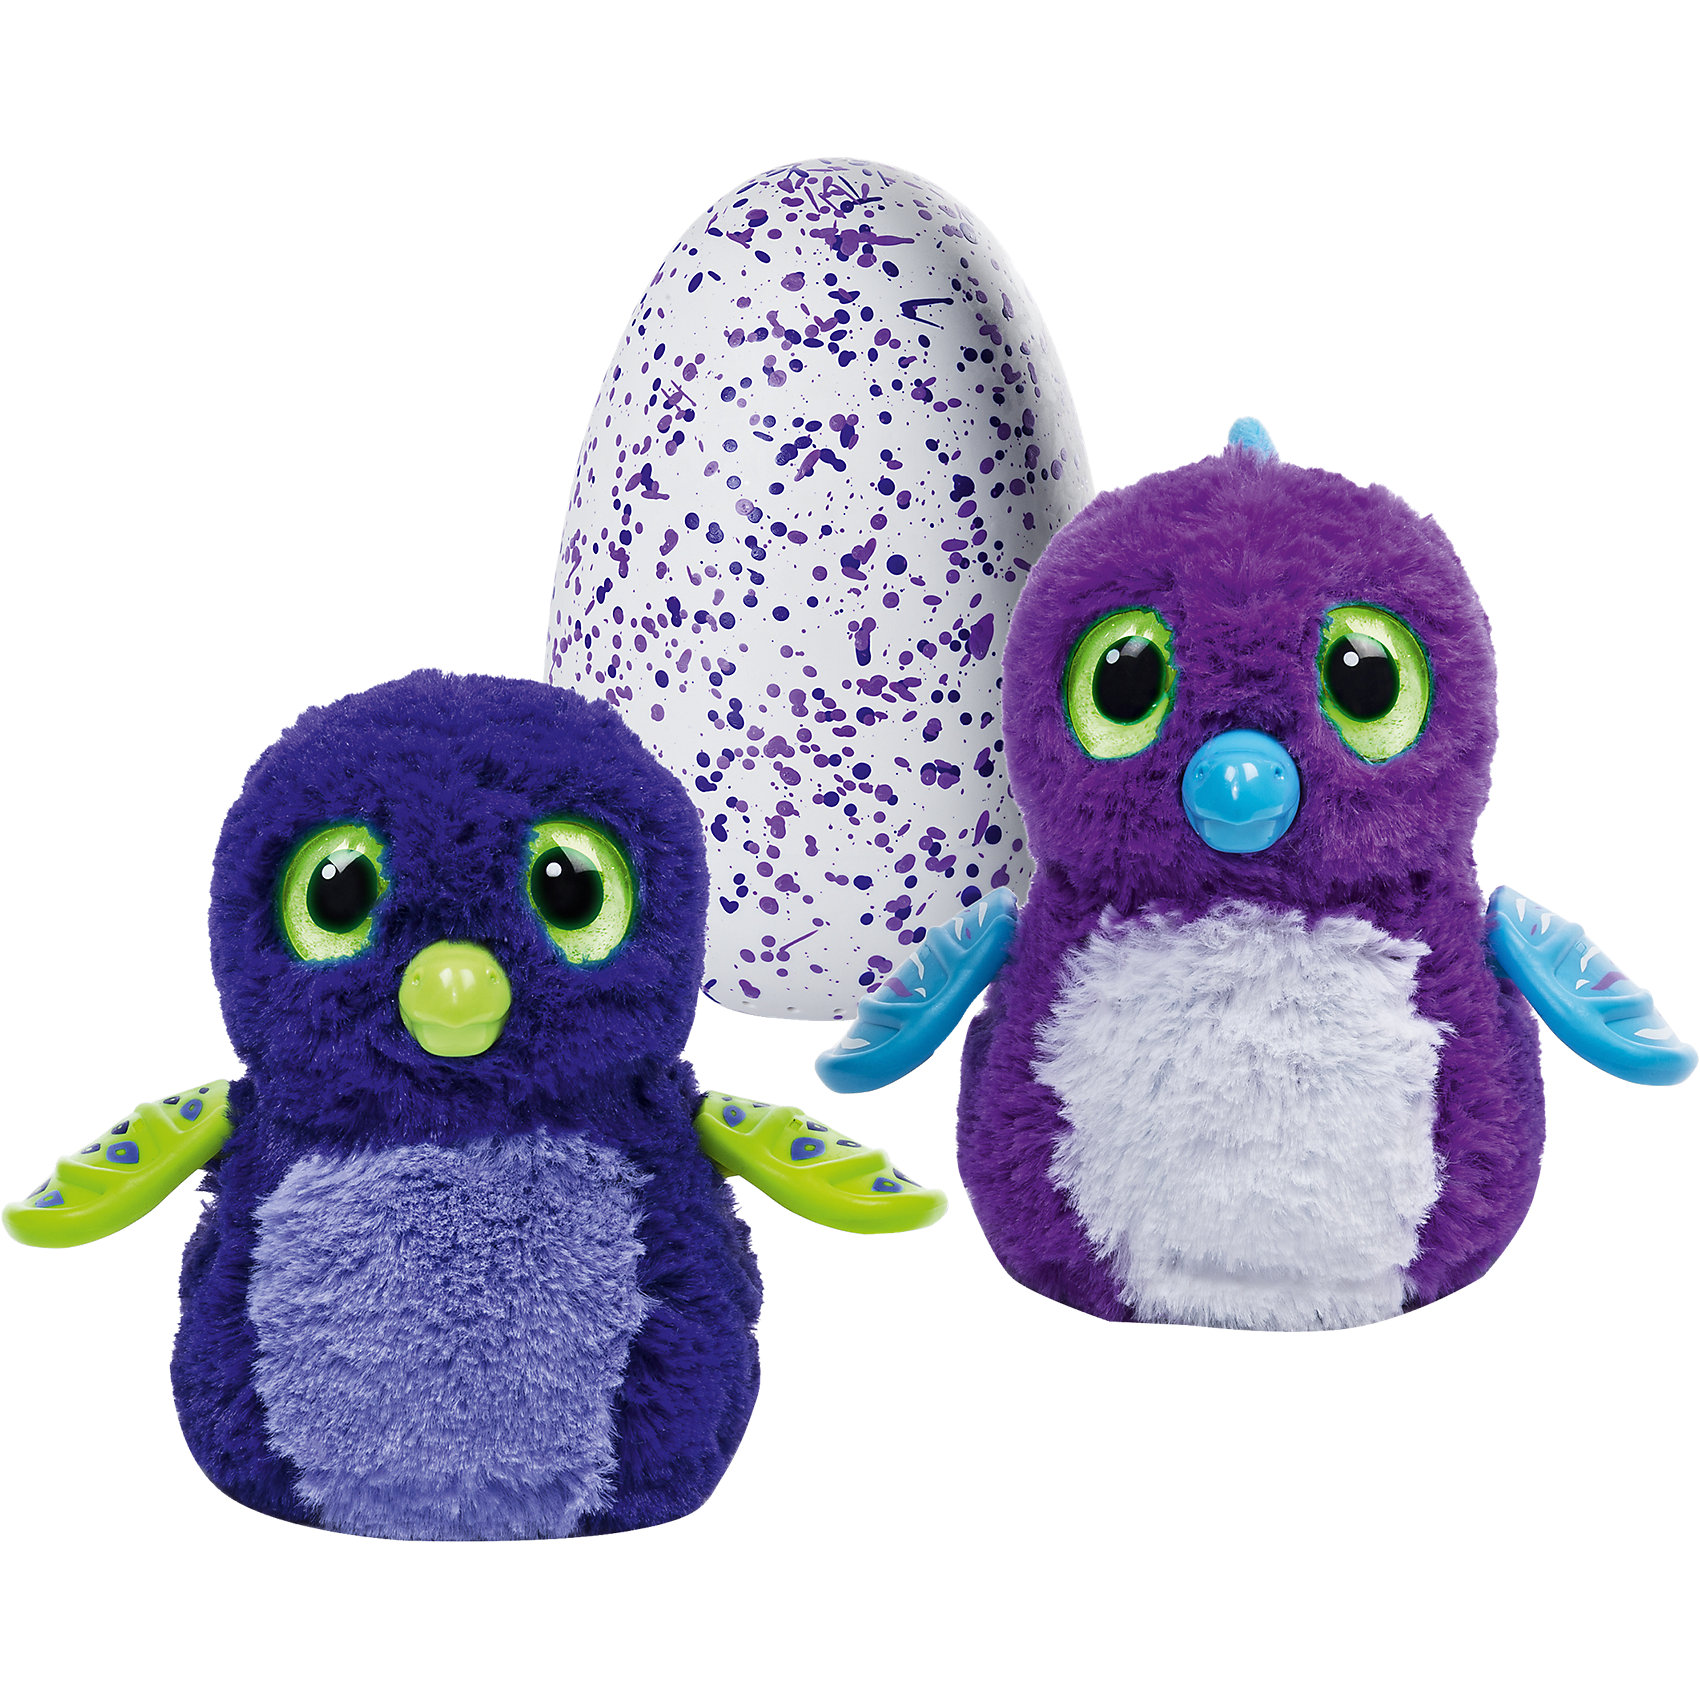 Дракончик Hatchimals, Spin Master, пурпурный